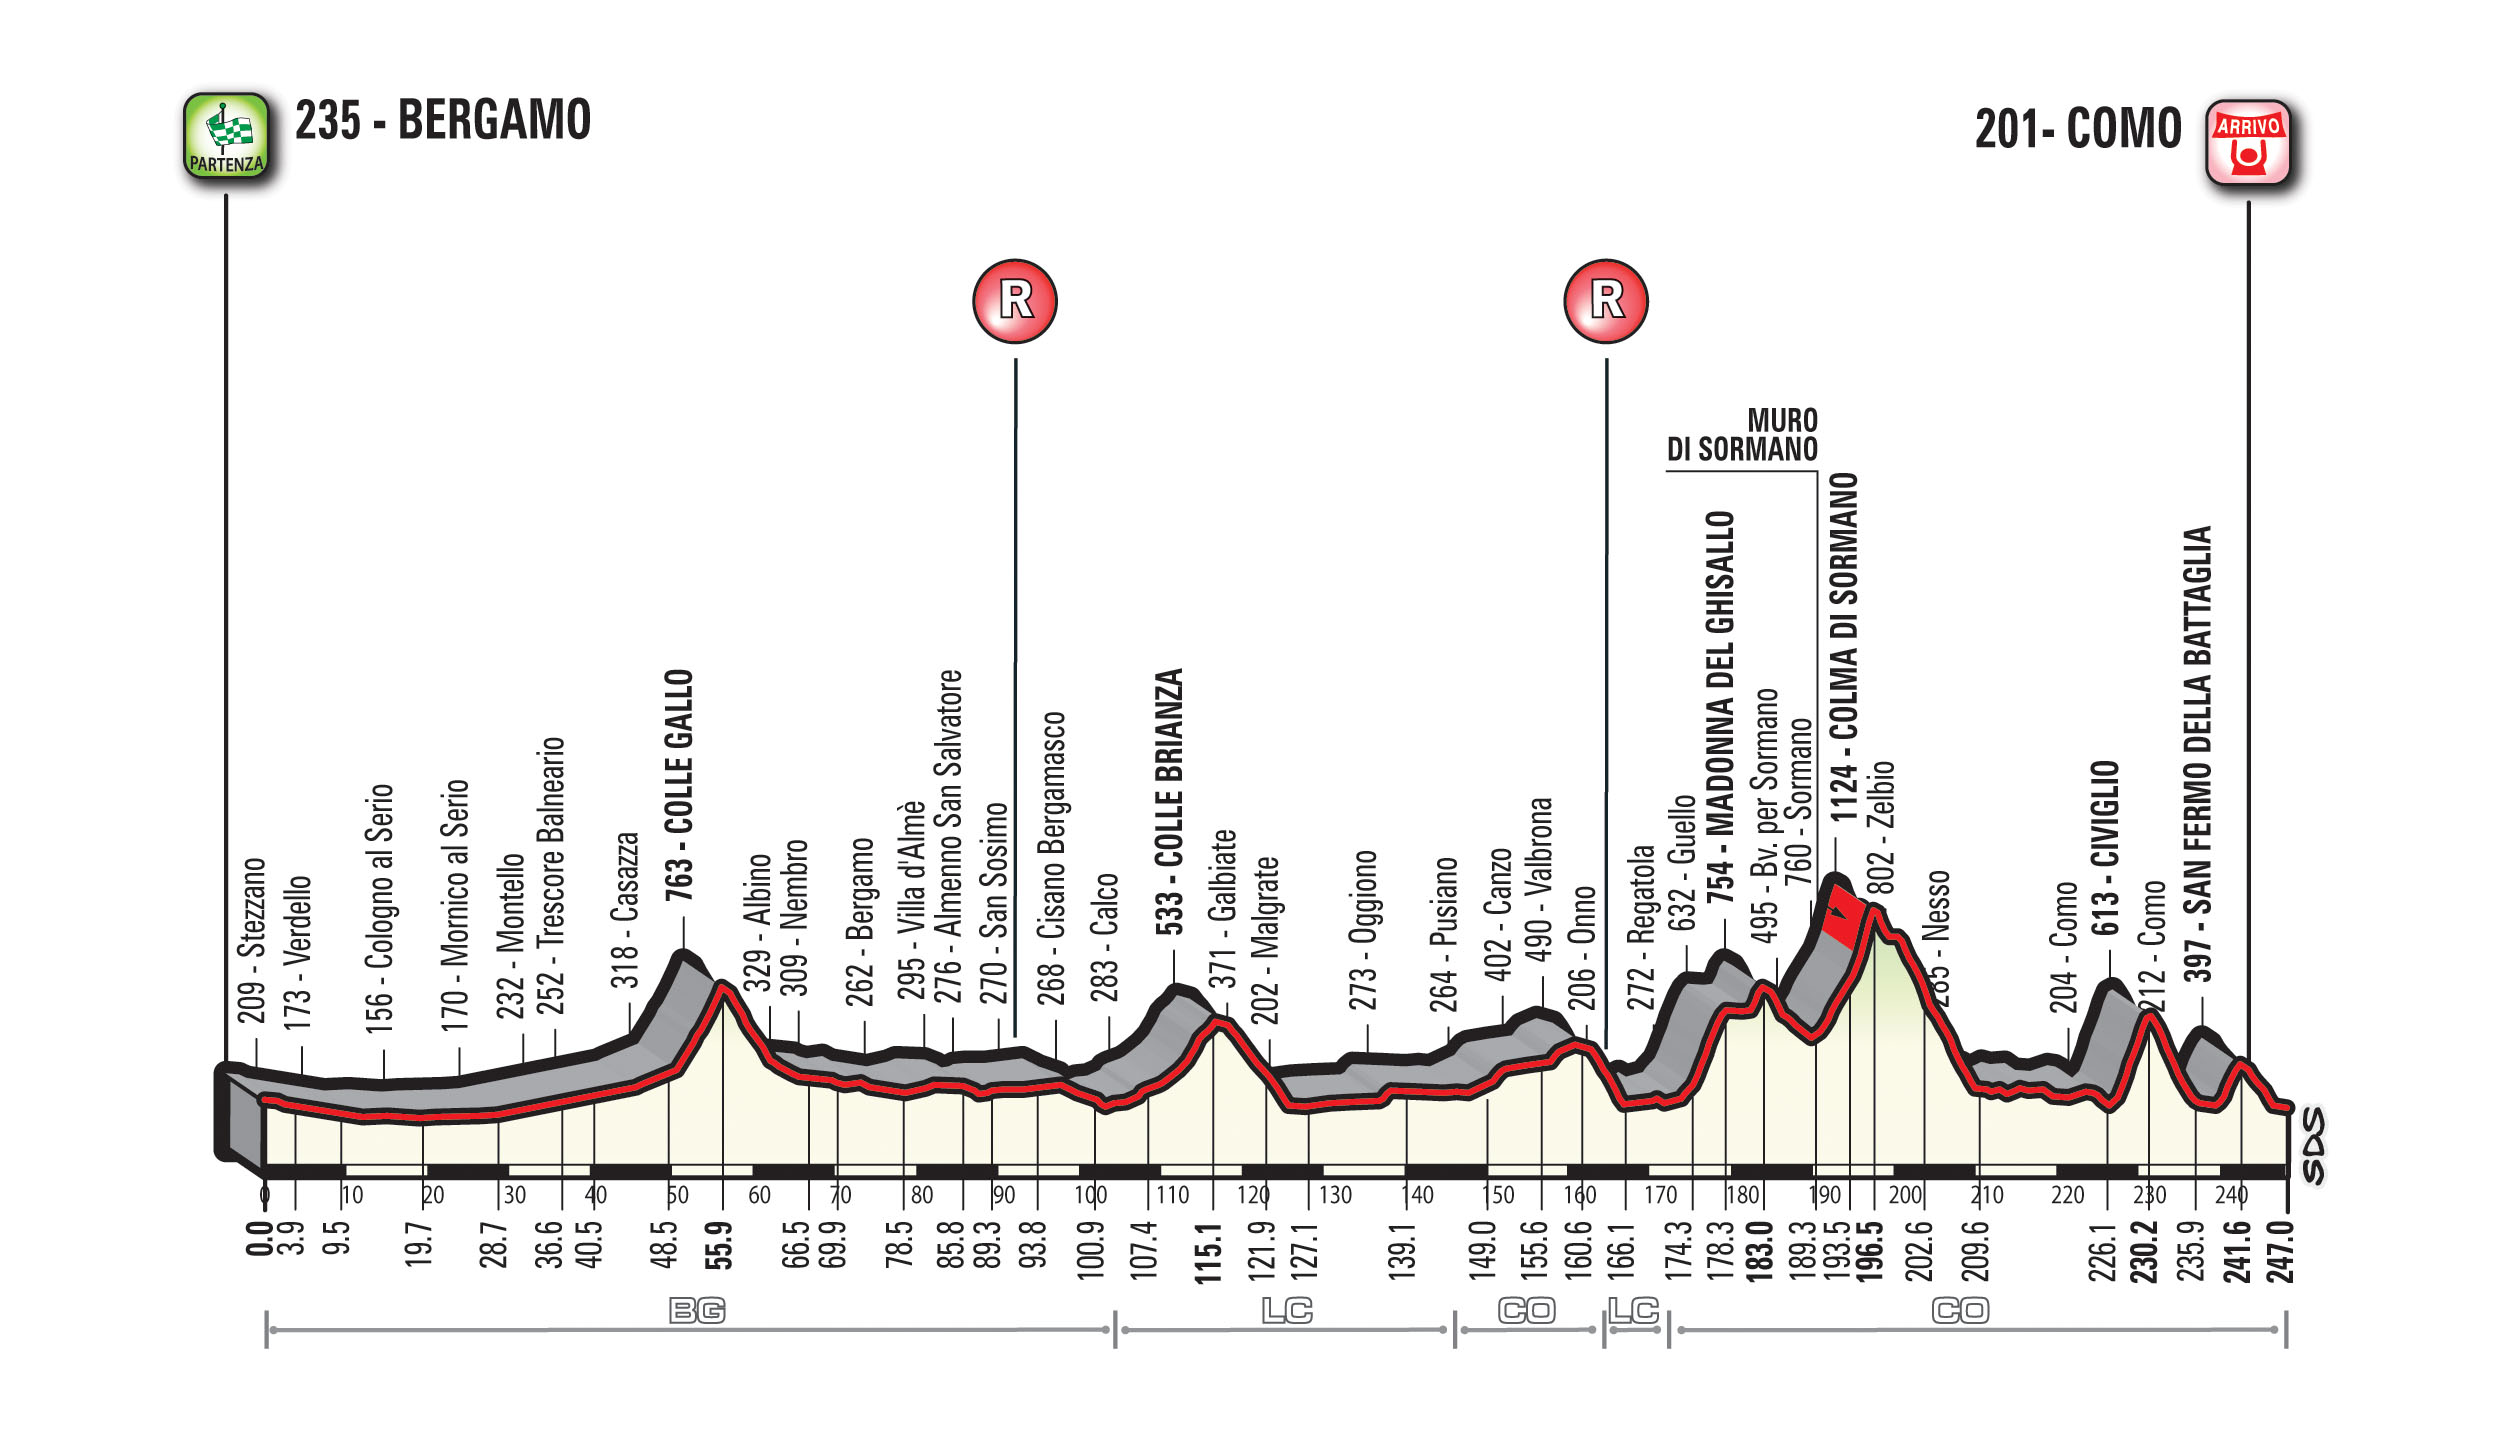 GF LOMBARDIA – THE ROUTE